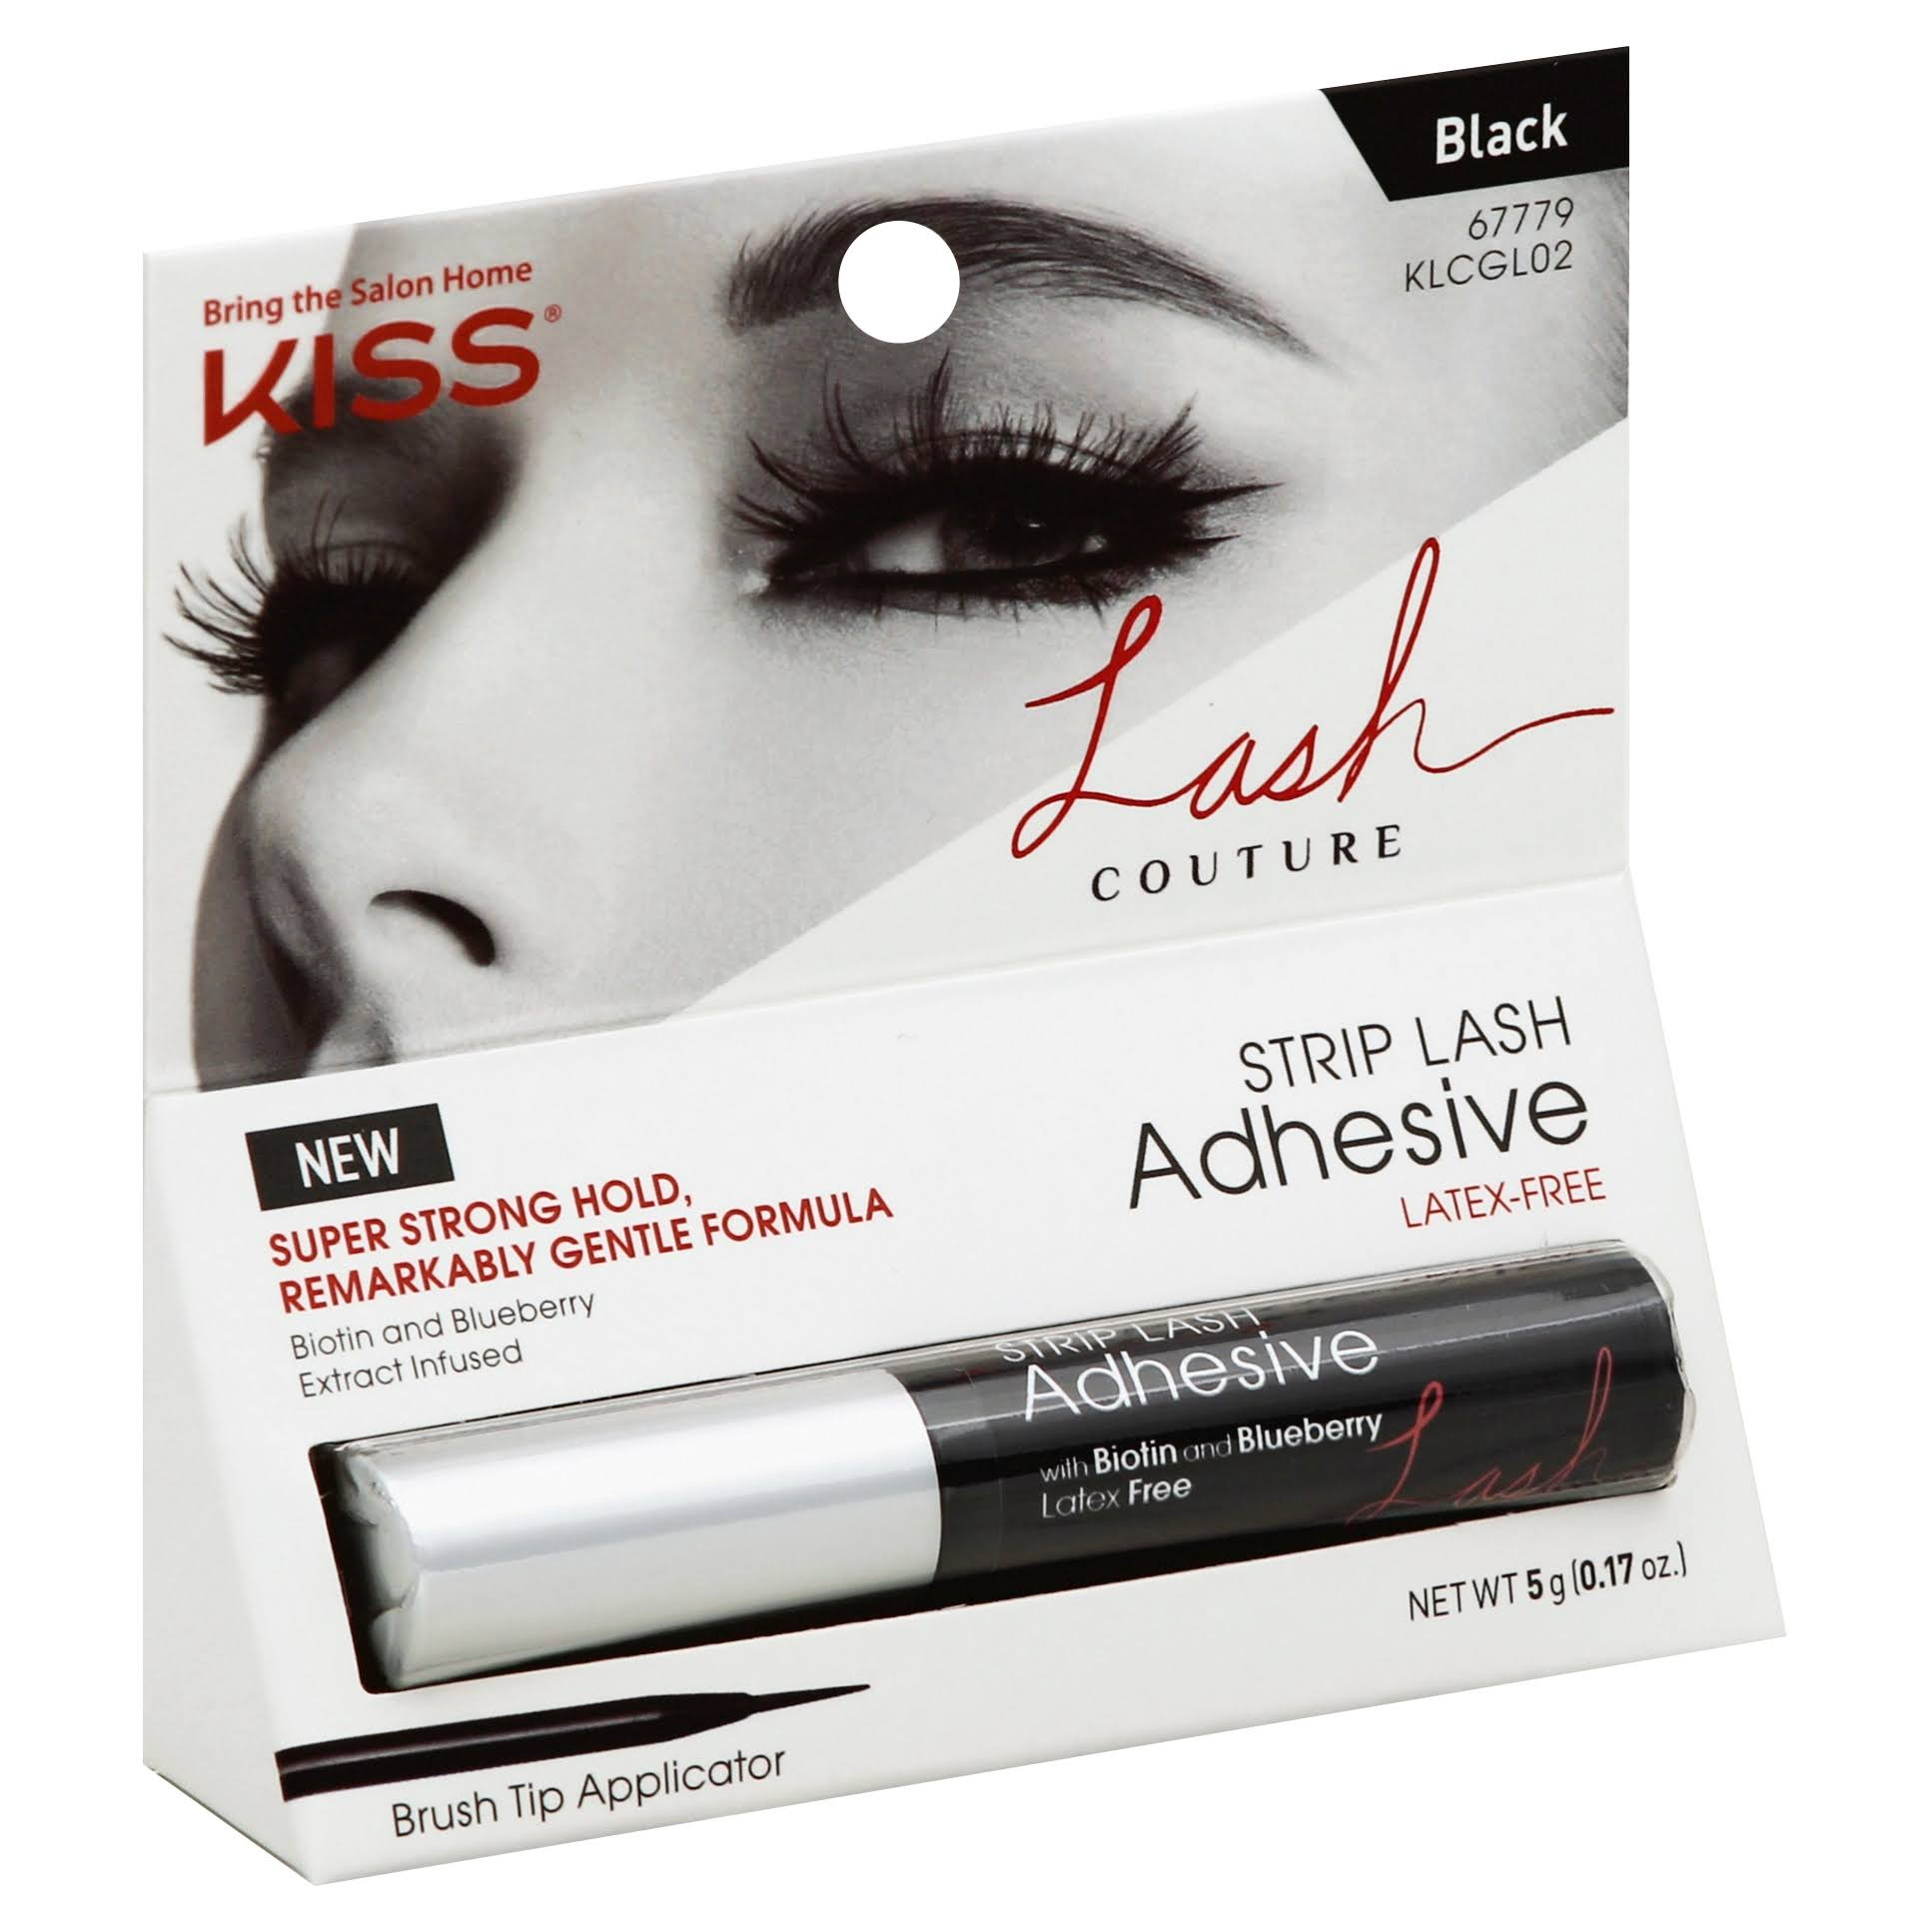 Kiss Lash Couture Adhesive Strip Lash - Black